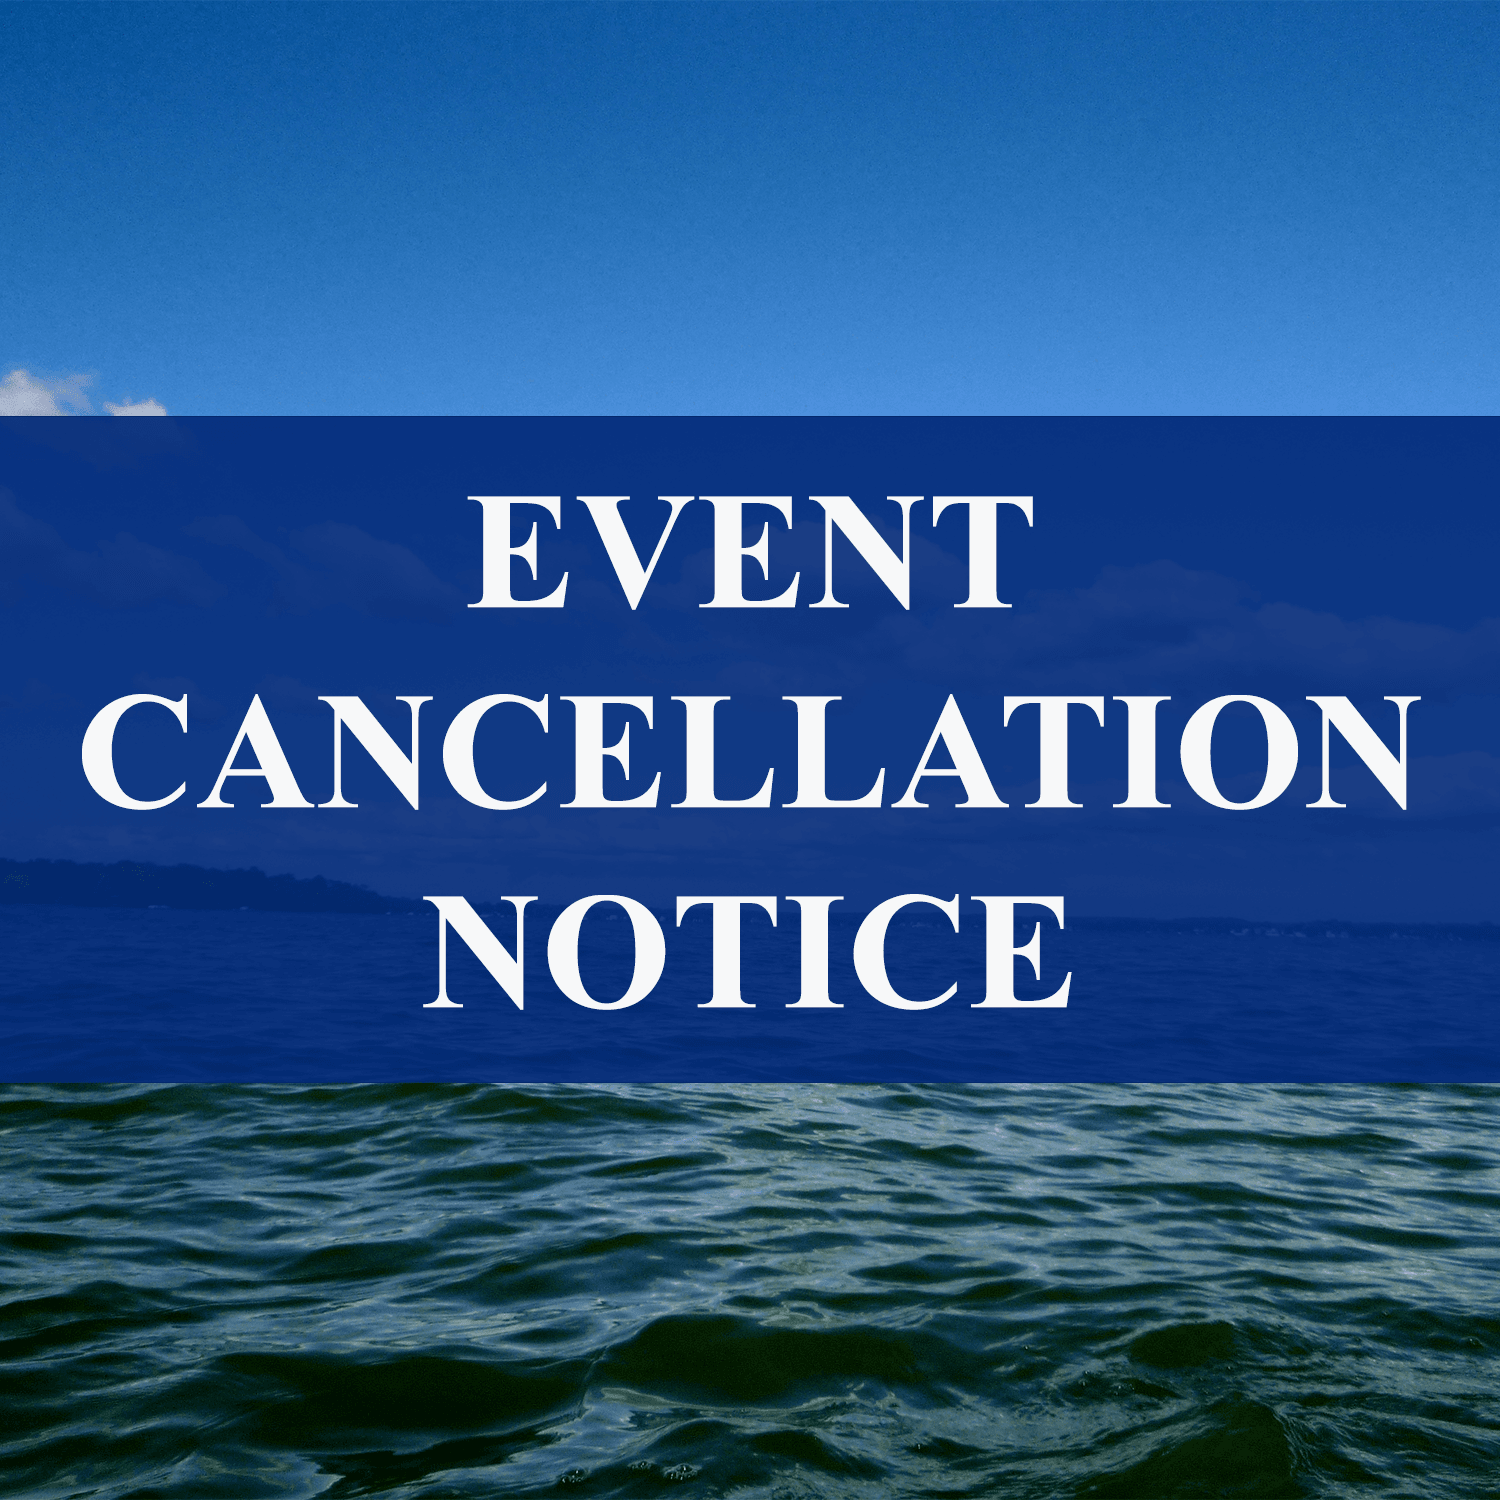 EVENT CANCELLATION NOTICE 2